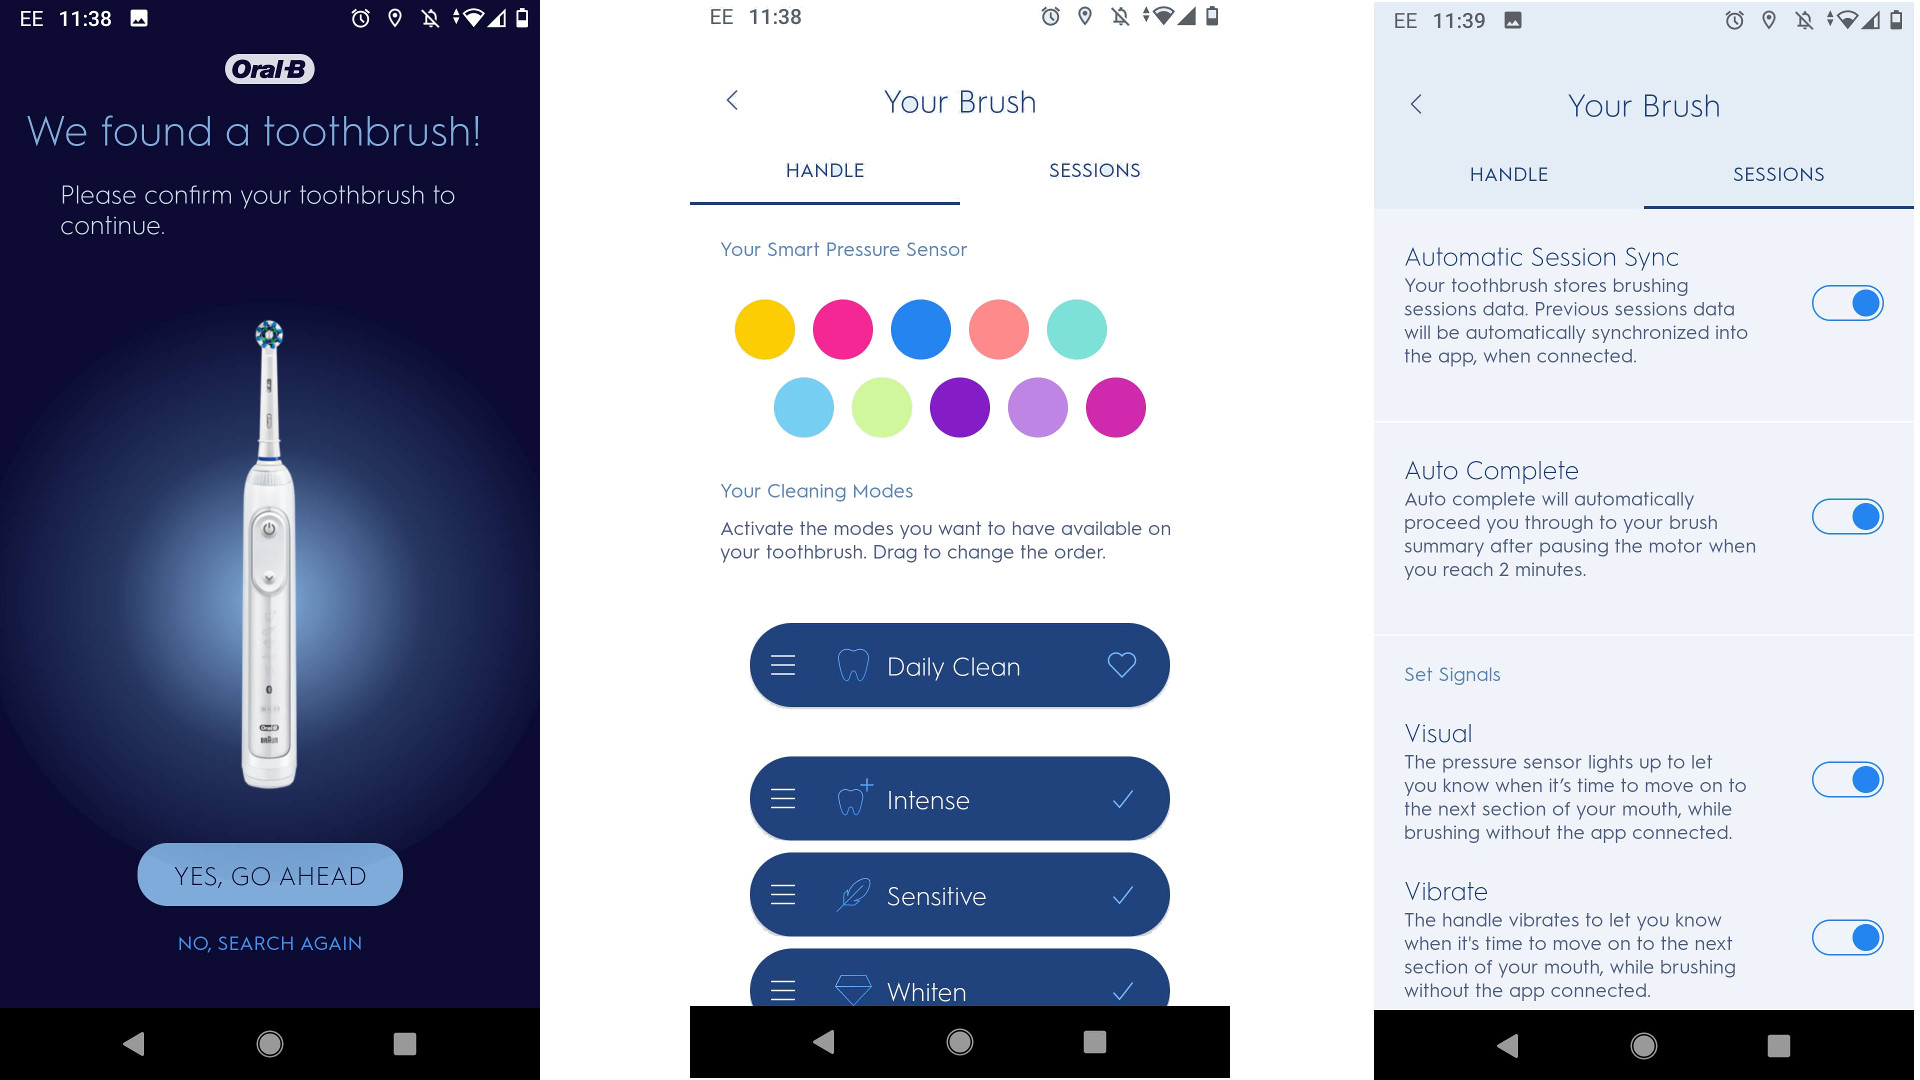 Screenshots from the Oral-B smartphone app showing configuration options